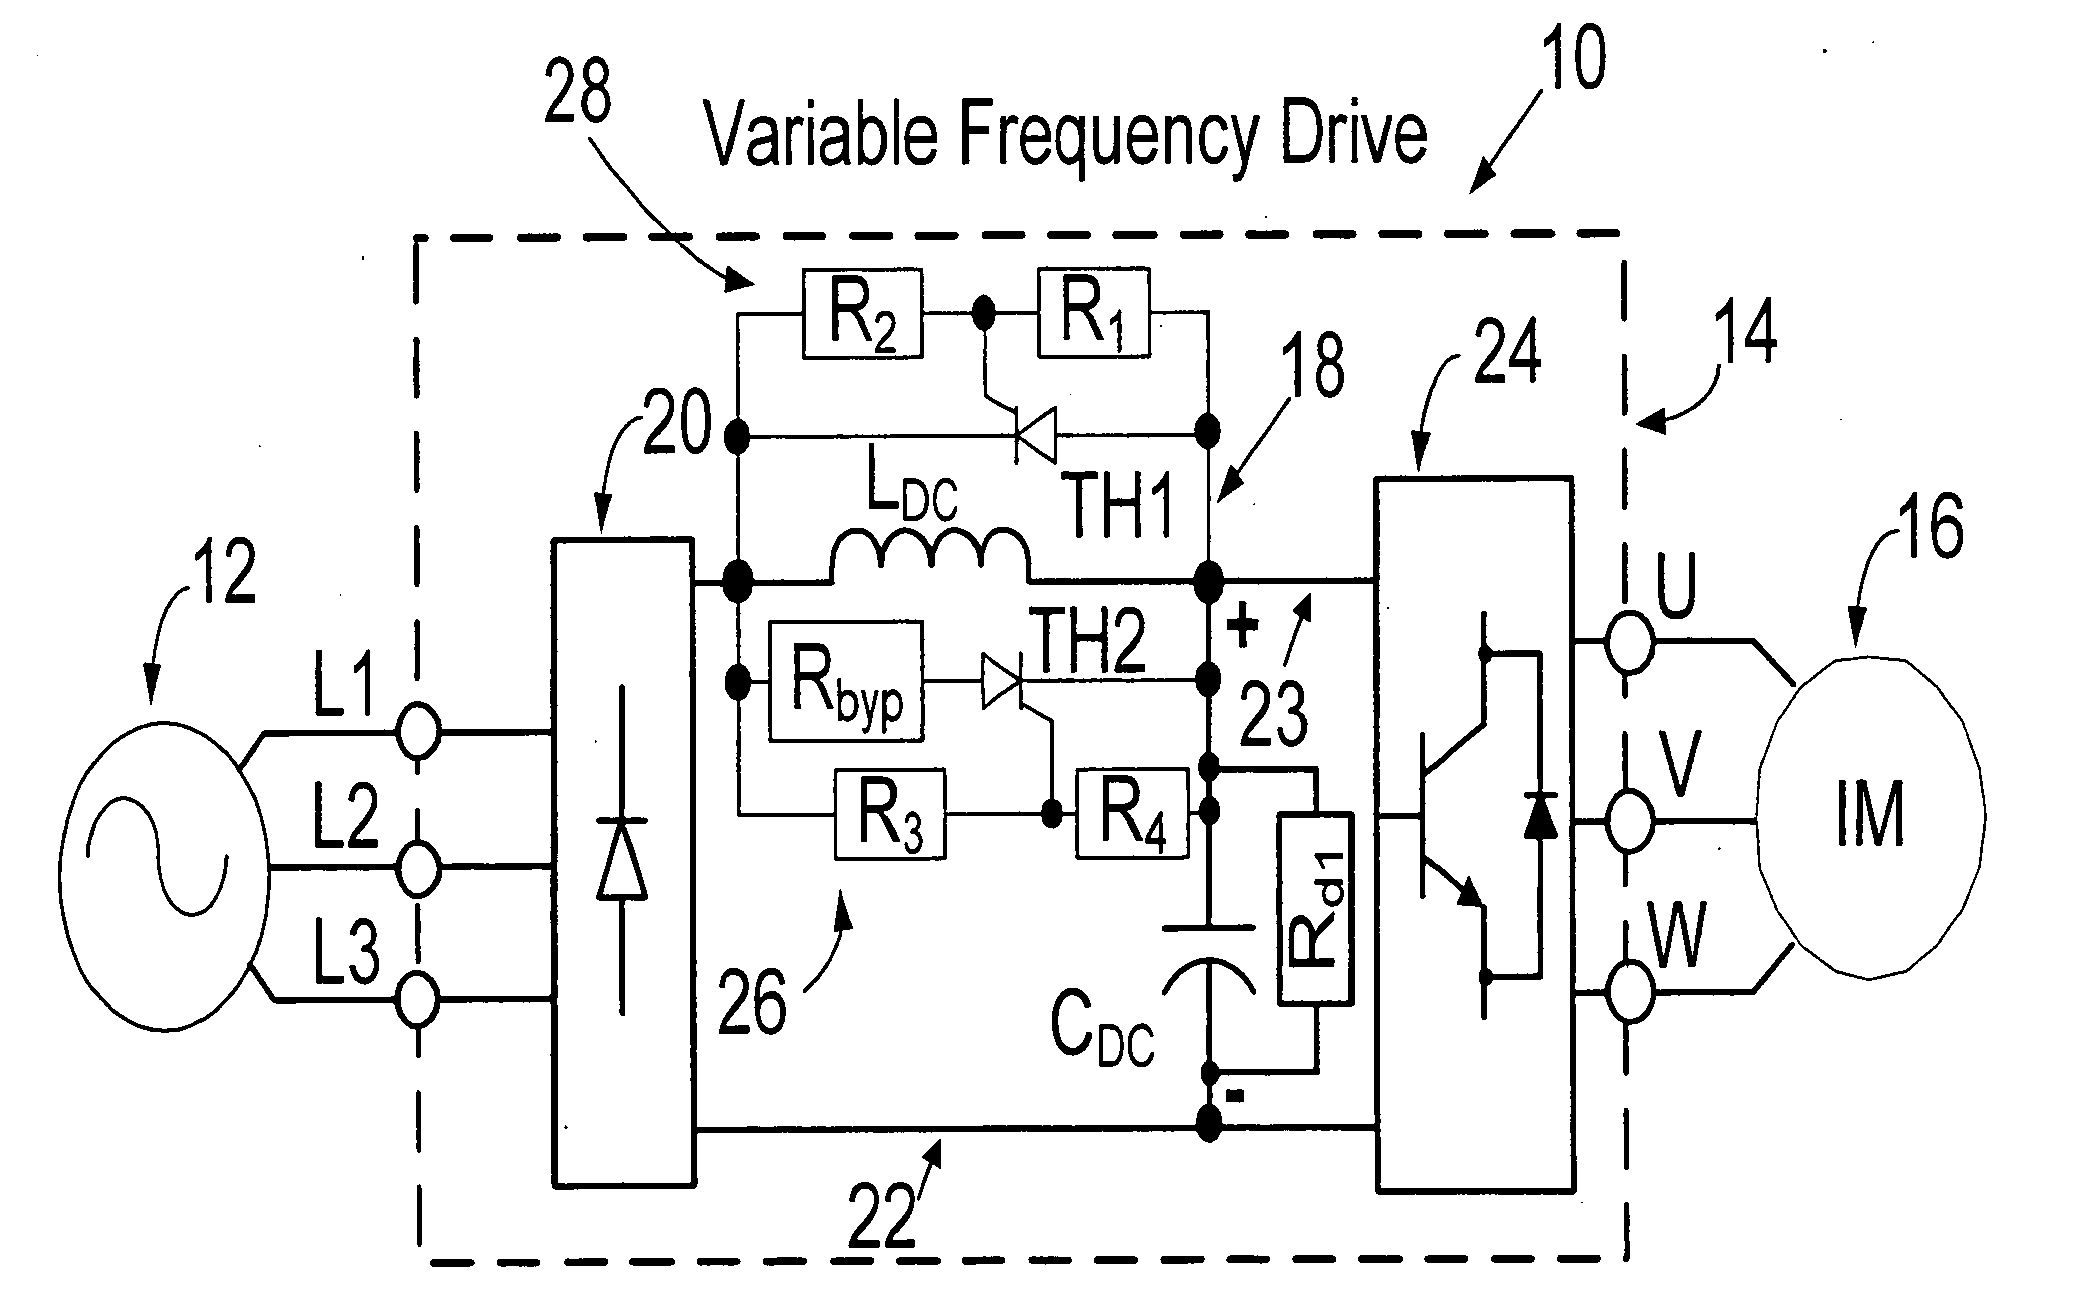 Frequency Drive Wiring Diagram For Auto Electrical Related With